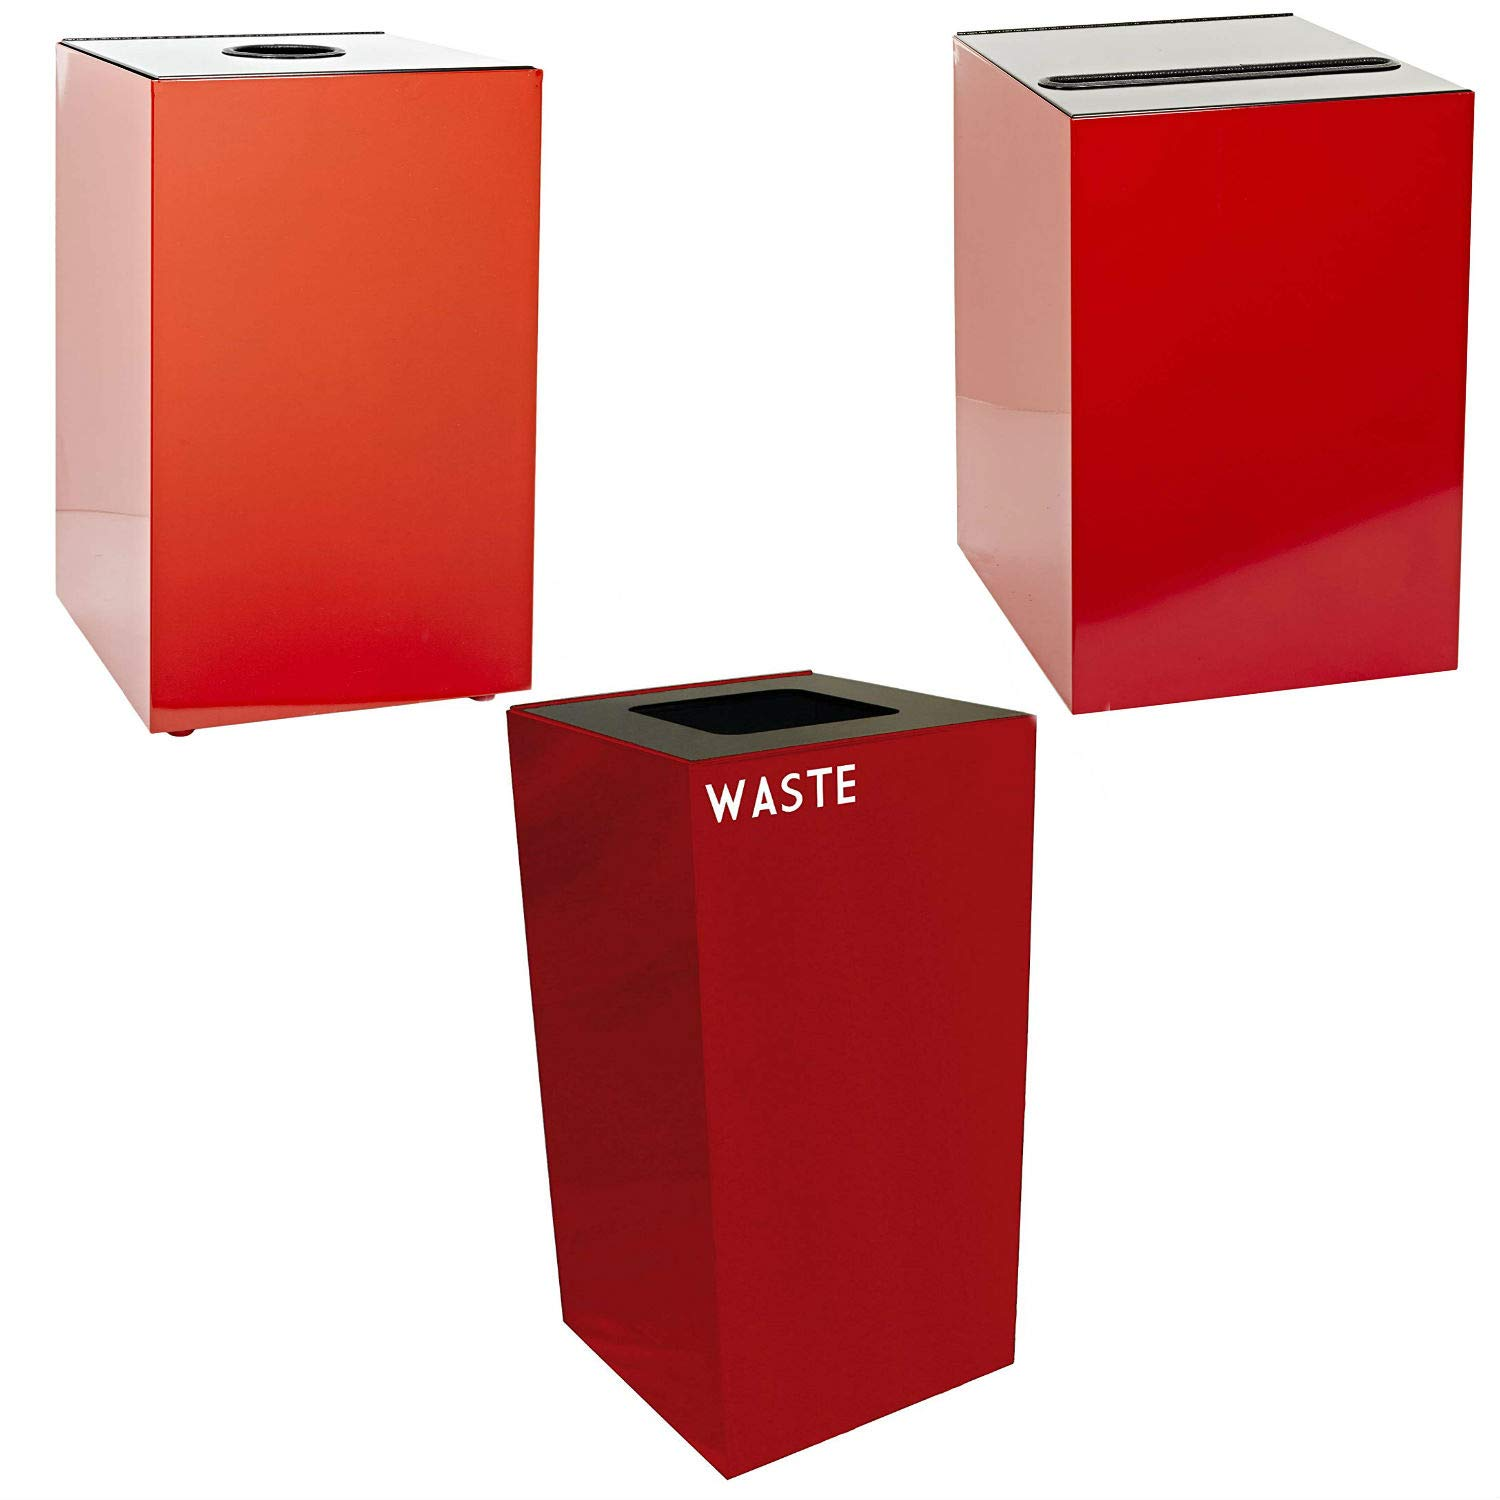 Witt Industries Steel 32-Gallon Geo Cube Recycling Container, Round Opening, Legend Cans, Slot Opening, Legend Newspaper and Square Opening, Legend Waste Square